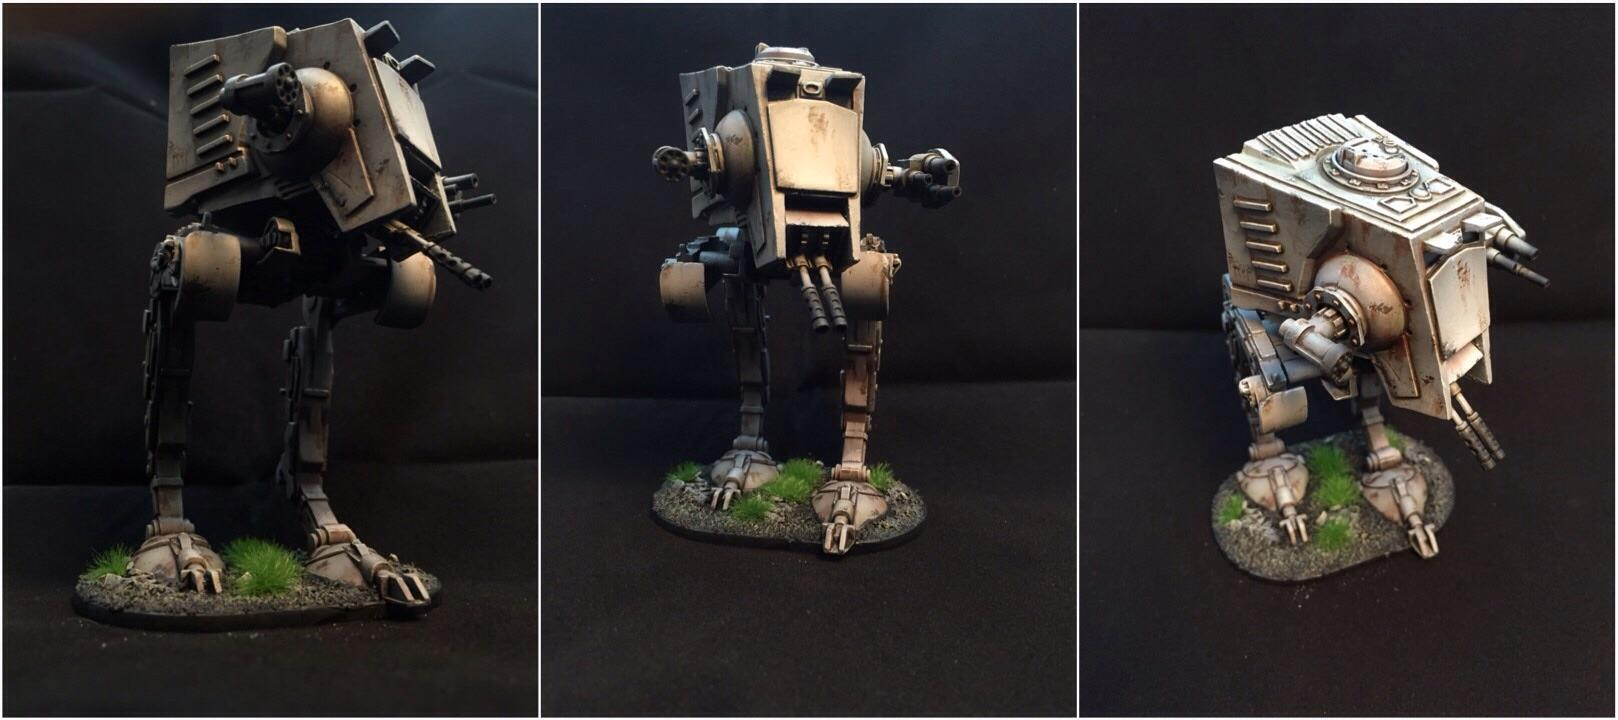 At-st, Imperial Assault, Starwars